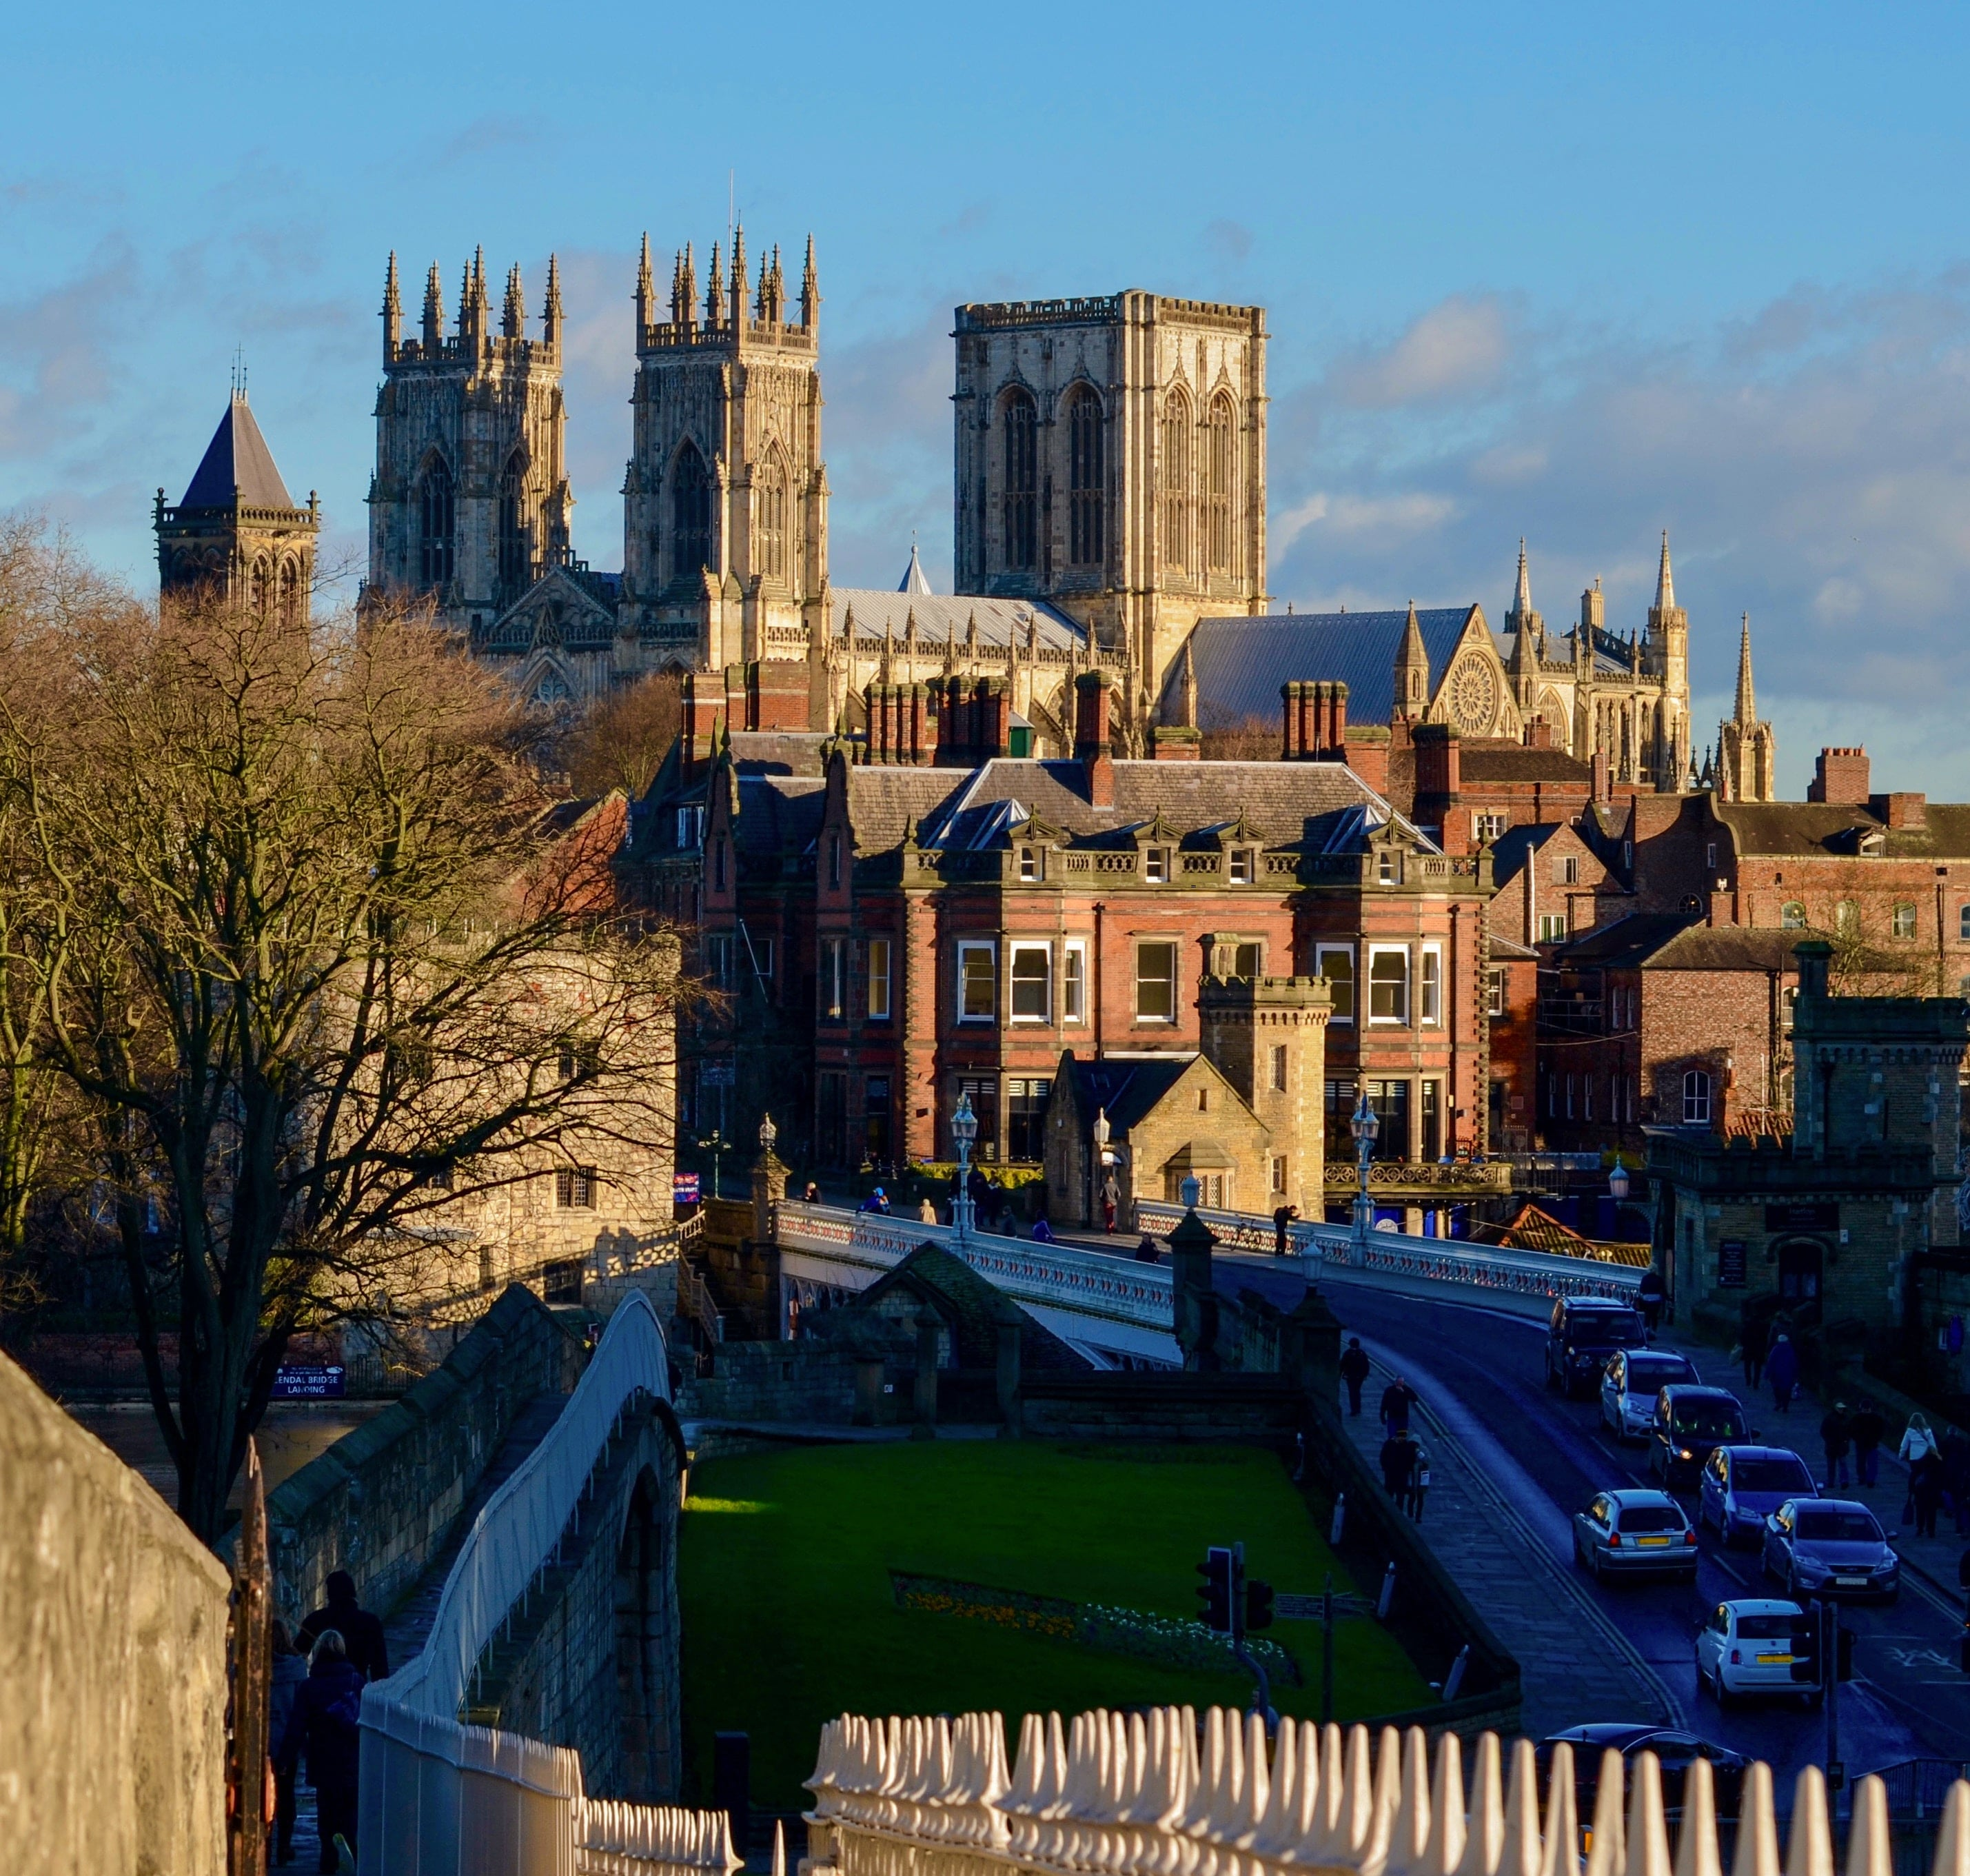 york walls, best things to do in york, york itinerary, stuff to do in york, what to do around york, york castle, cliffords tower